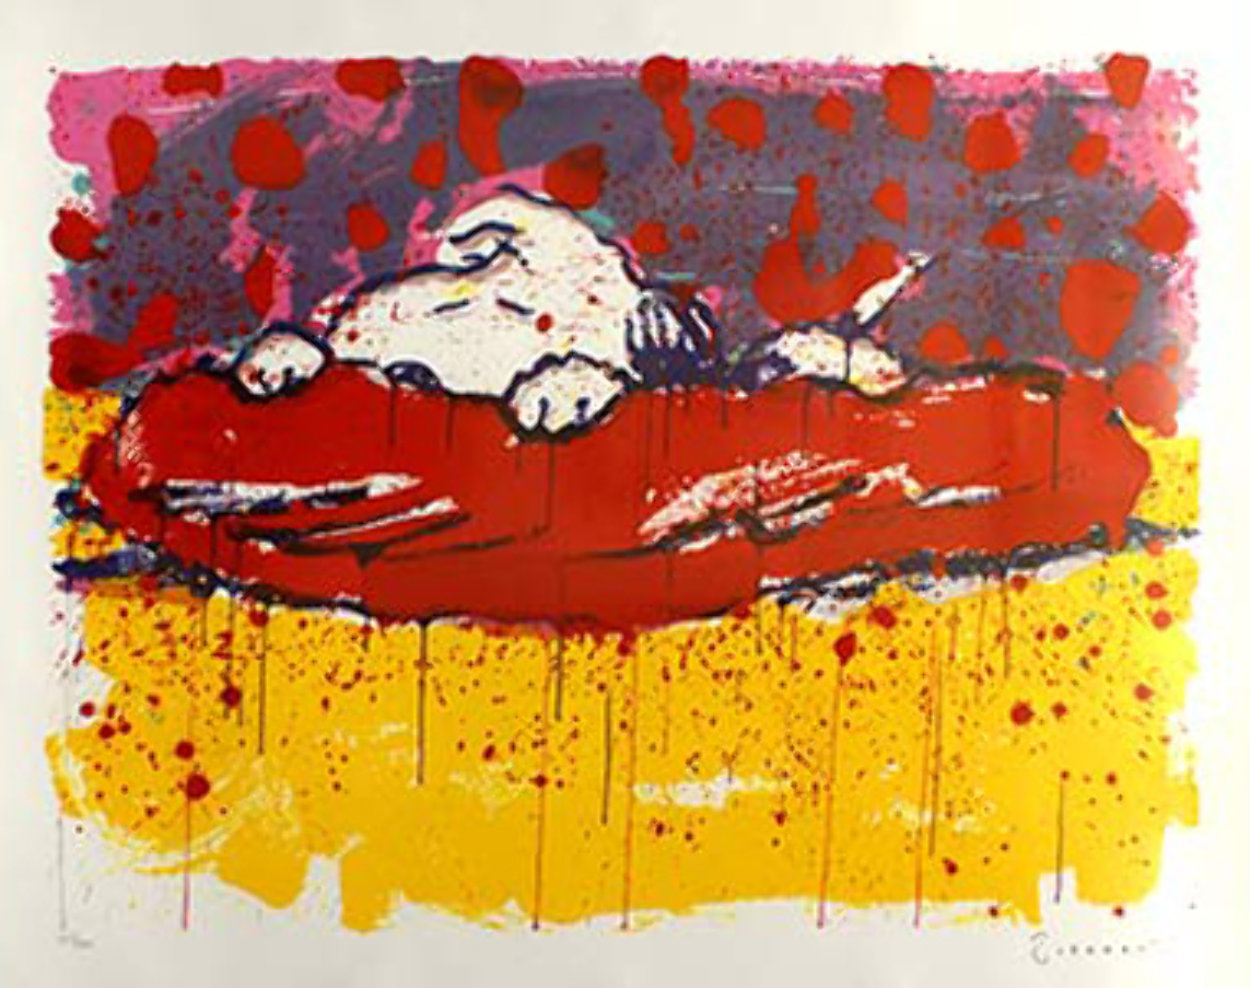 Pig Out, Captain Dreamer Limited Edition Print by Tom Everhart